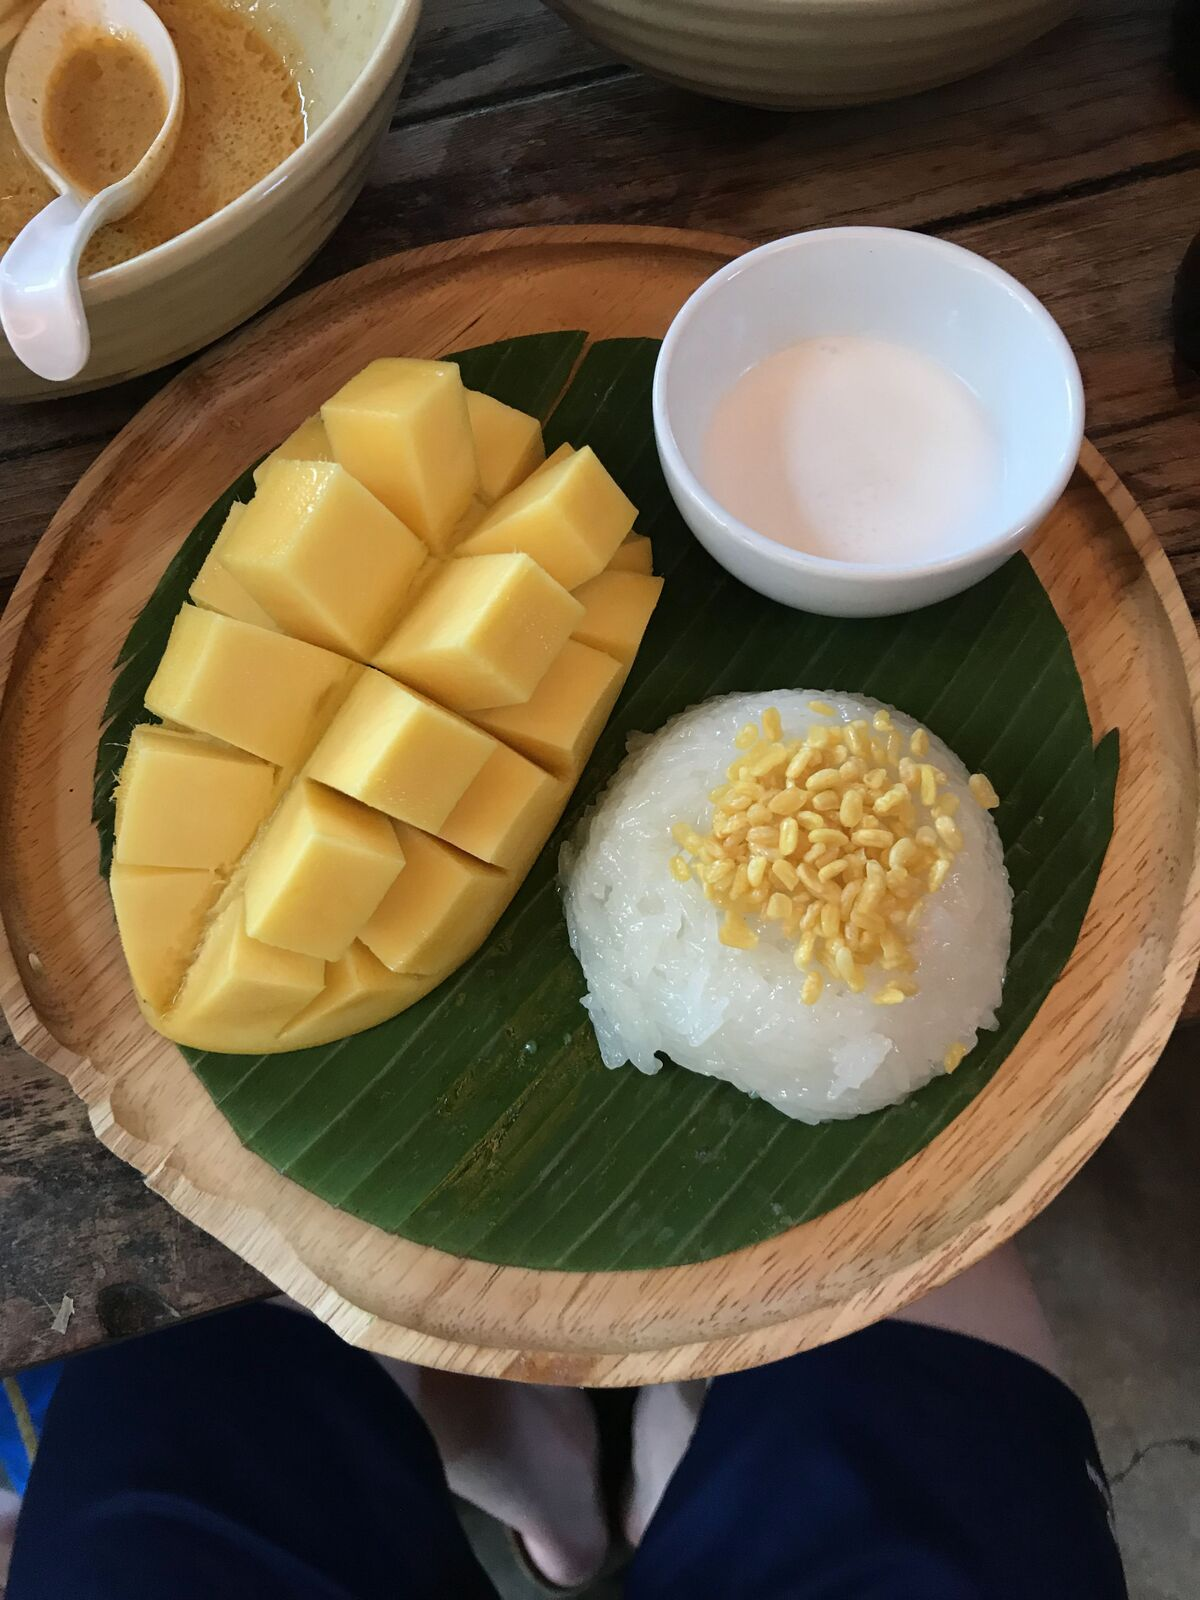 Caption: mango sticky rice, you can never have too much of it. Available on every street corner and consumed at a minimum of 2 times a day. Essential.